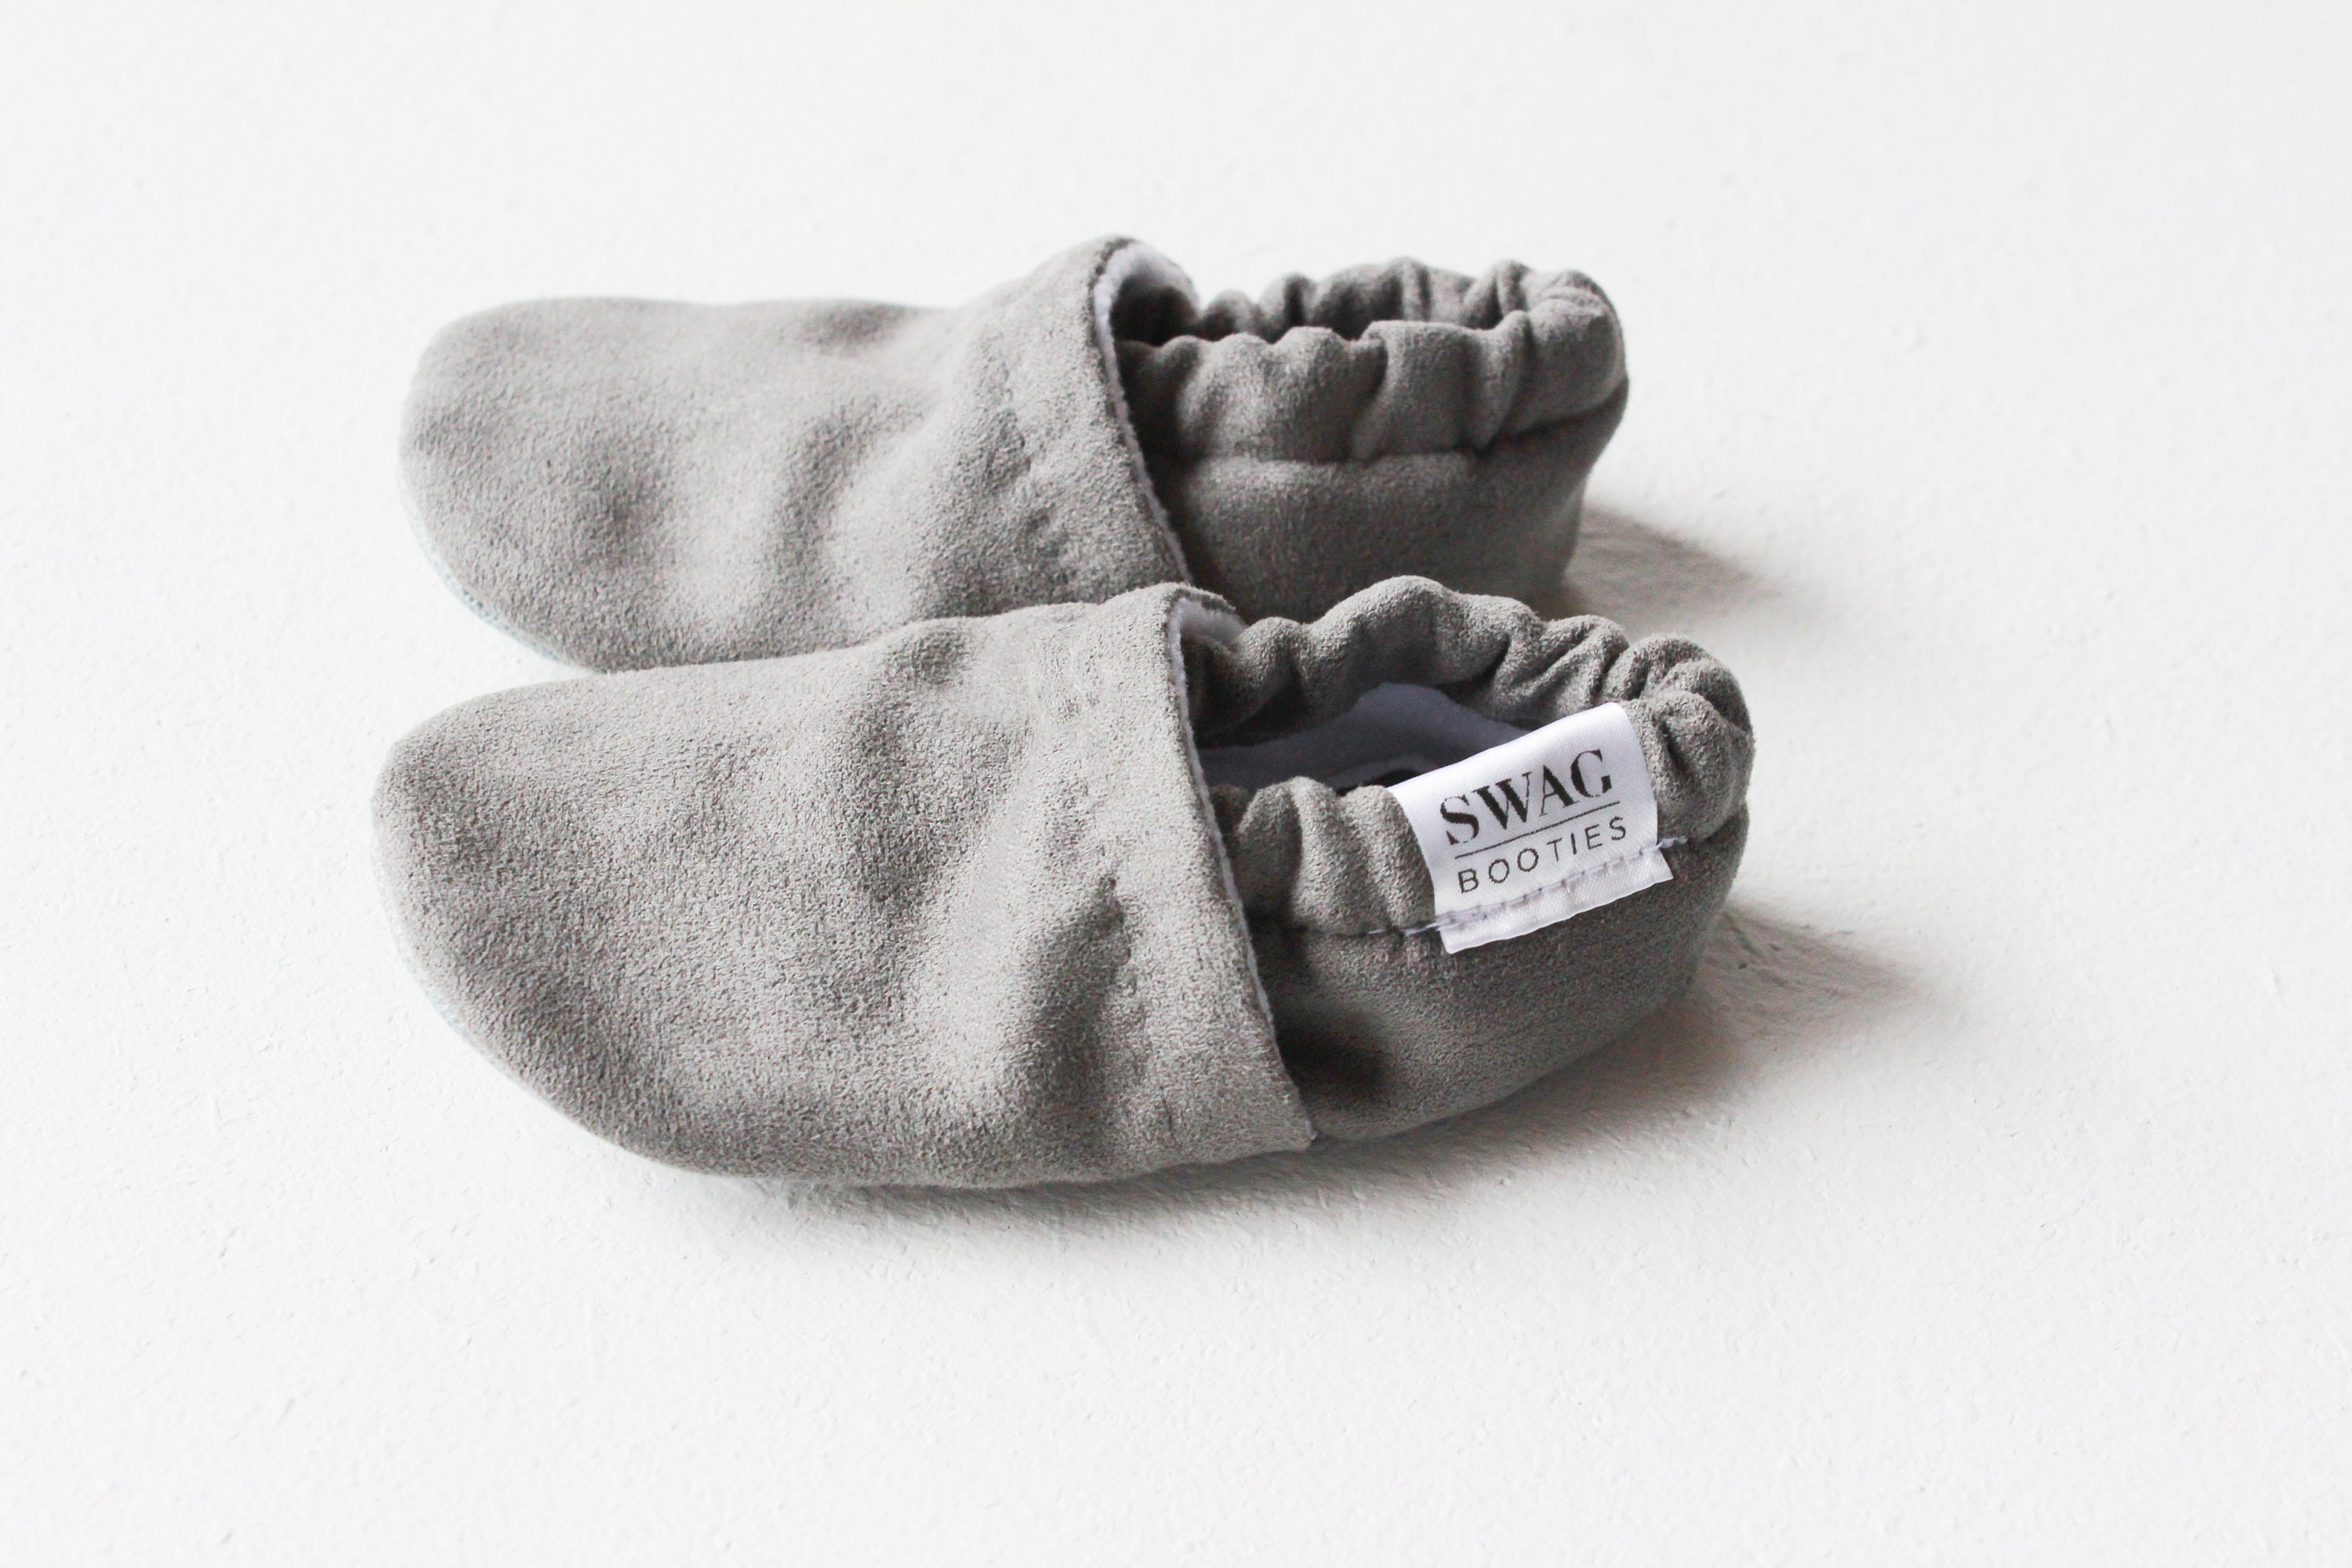 3327286b1e929 Baby Booties Faux Suede Grey Gray Baby Shoes Soft Sole shoes Crib shoes  slippers non slip Newborn booties SWAG Infant Gender Neutral gift